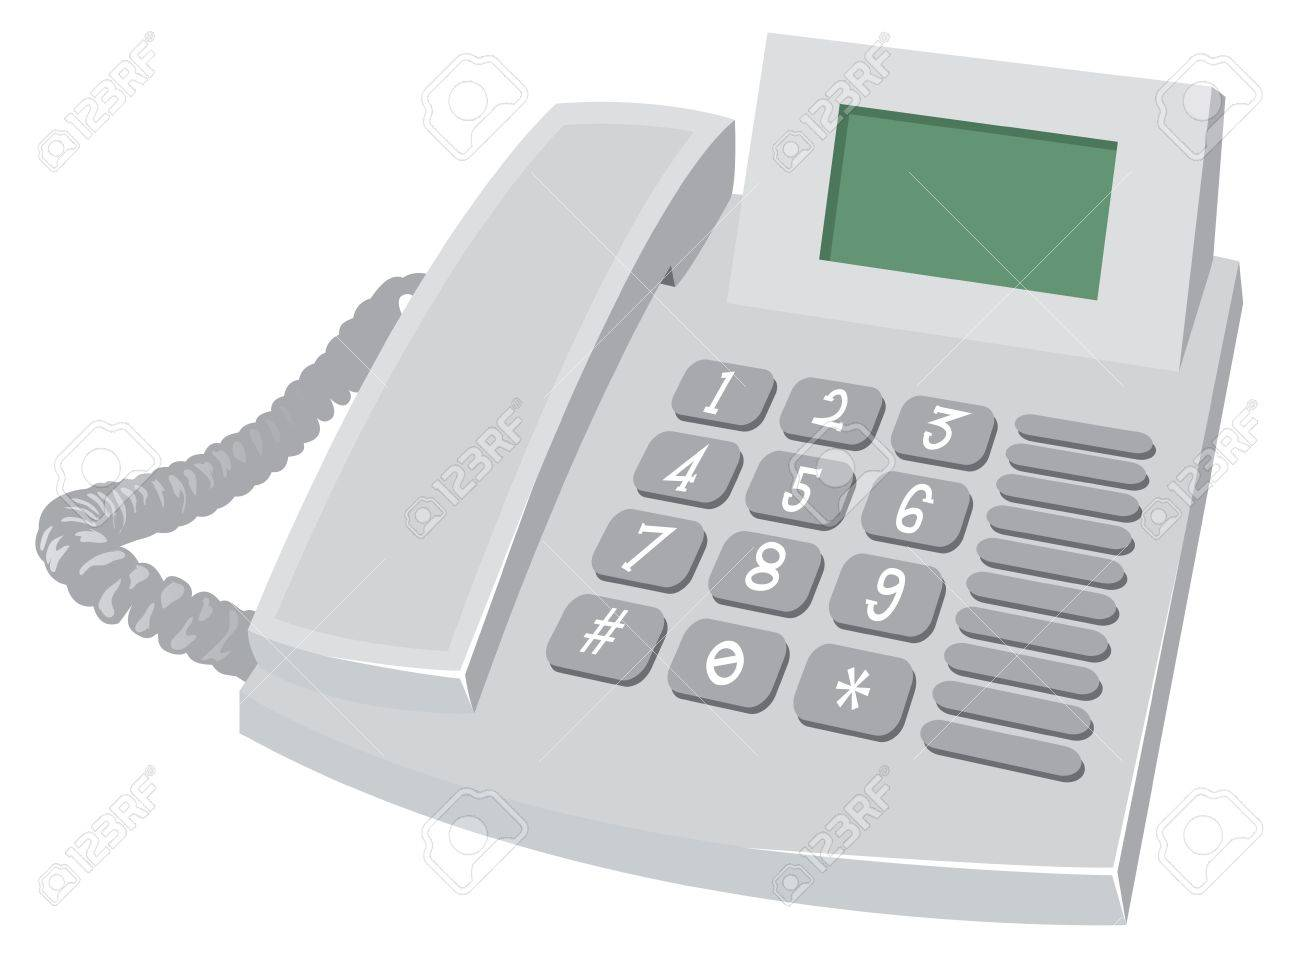 Desk Phone Stock Vector - 17972162